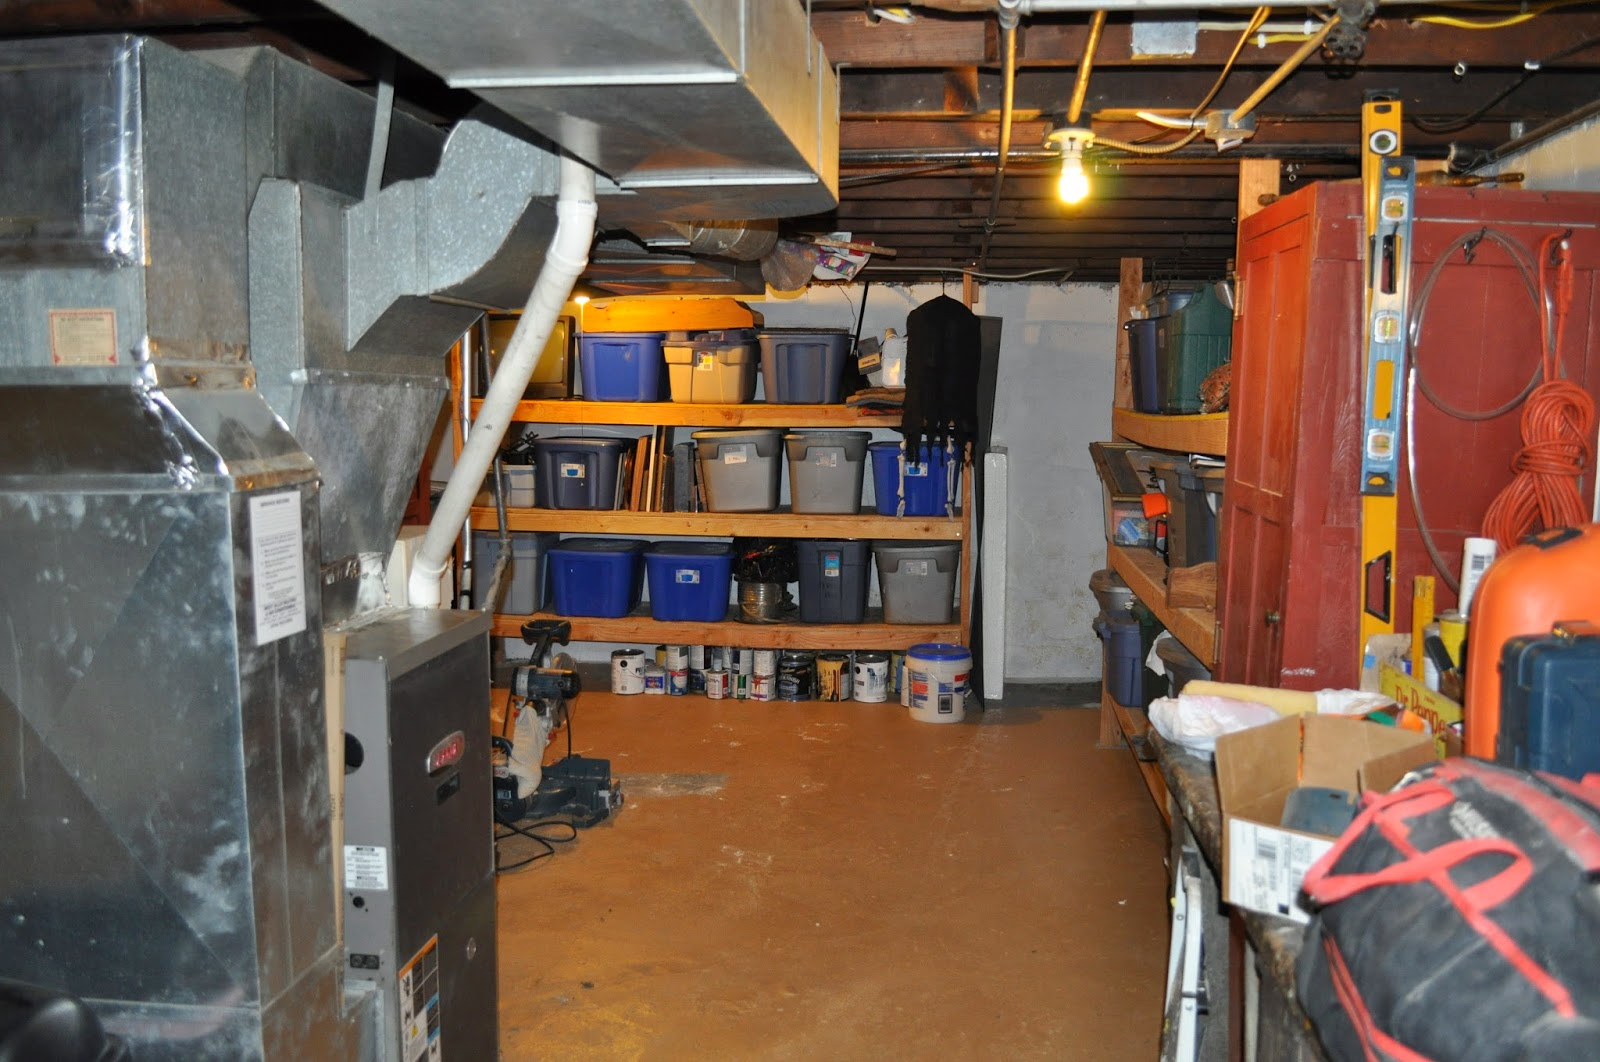 bathroom, disaster room, cleaning, organization, house showing, selling your house, DIY, basement organization